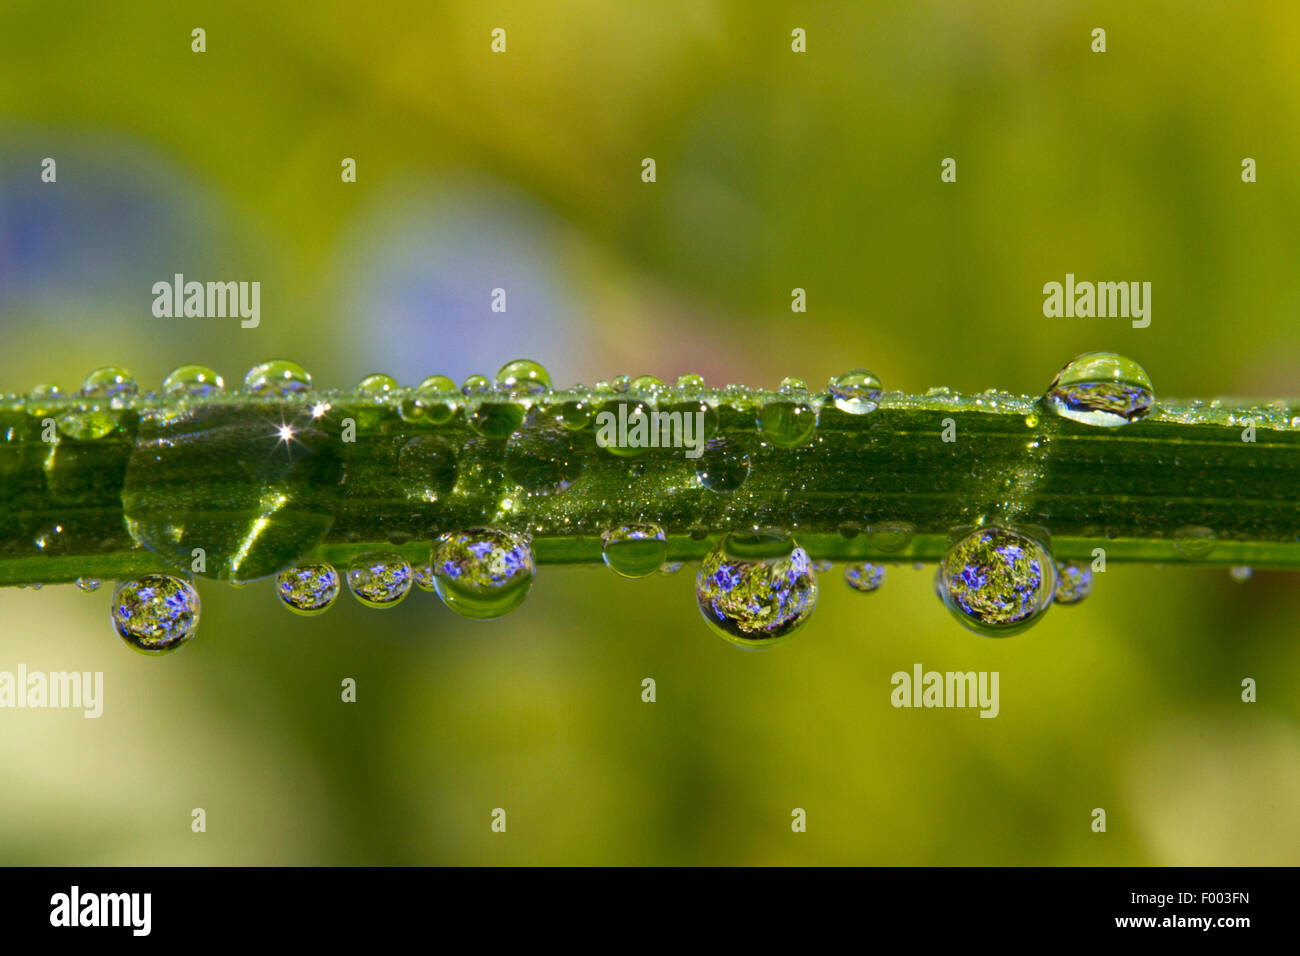 dew drops with mirror images, Germany, Mecklenburg-Western Pomerania - Stock Image